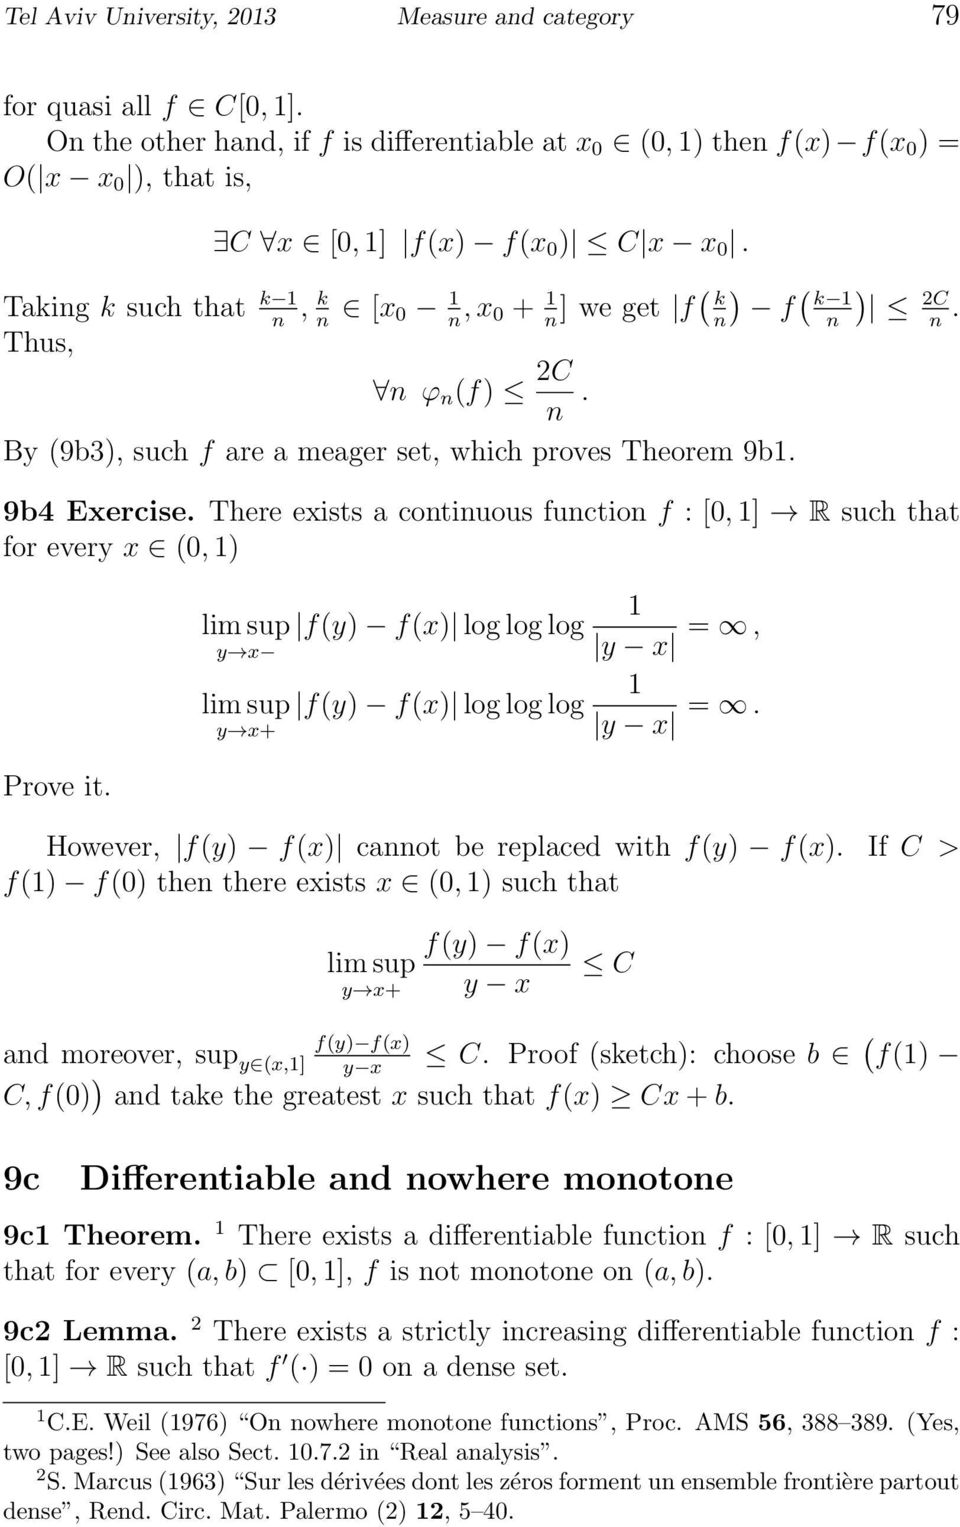 9 More on differentiation - PDF